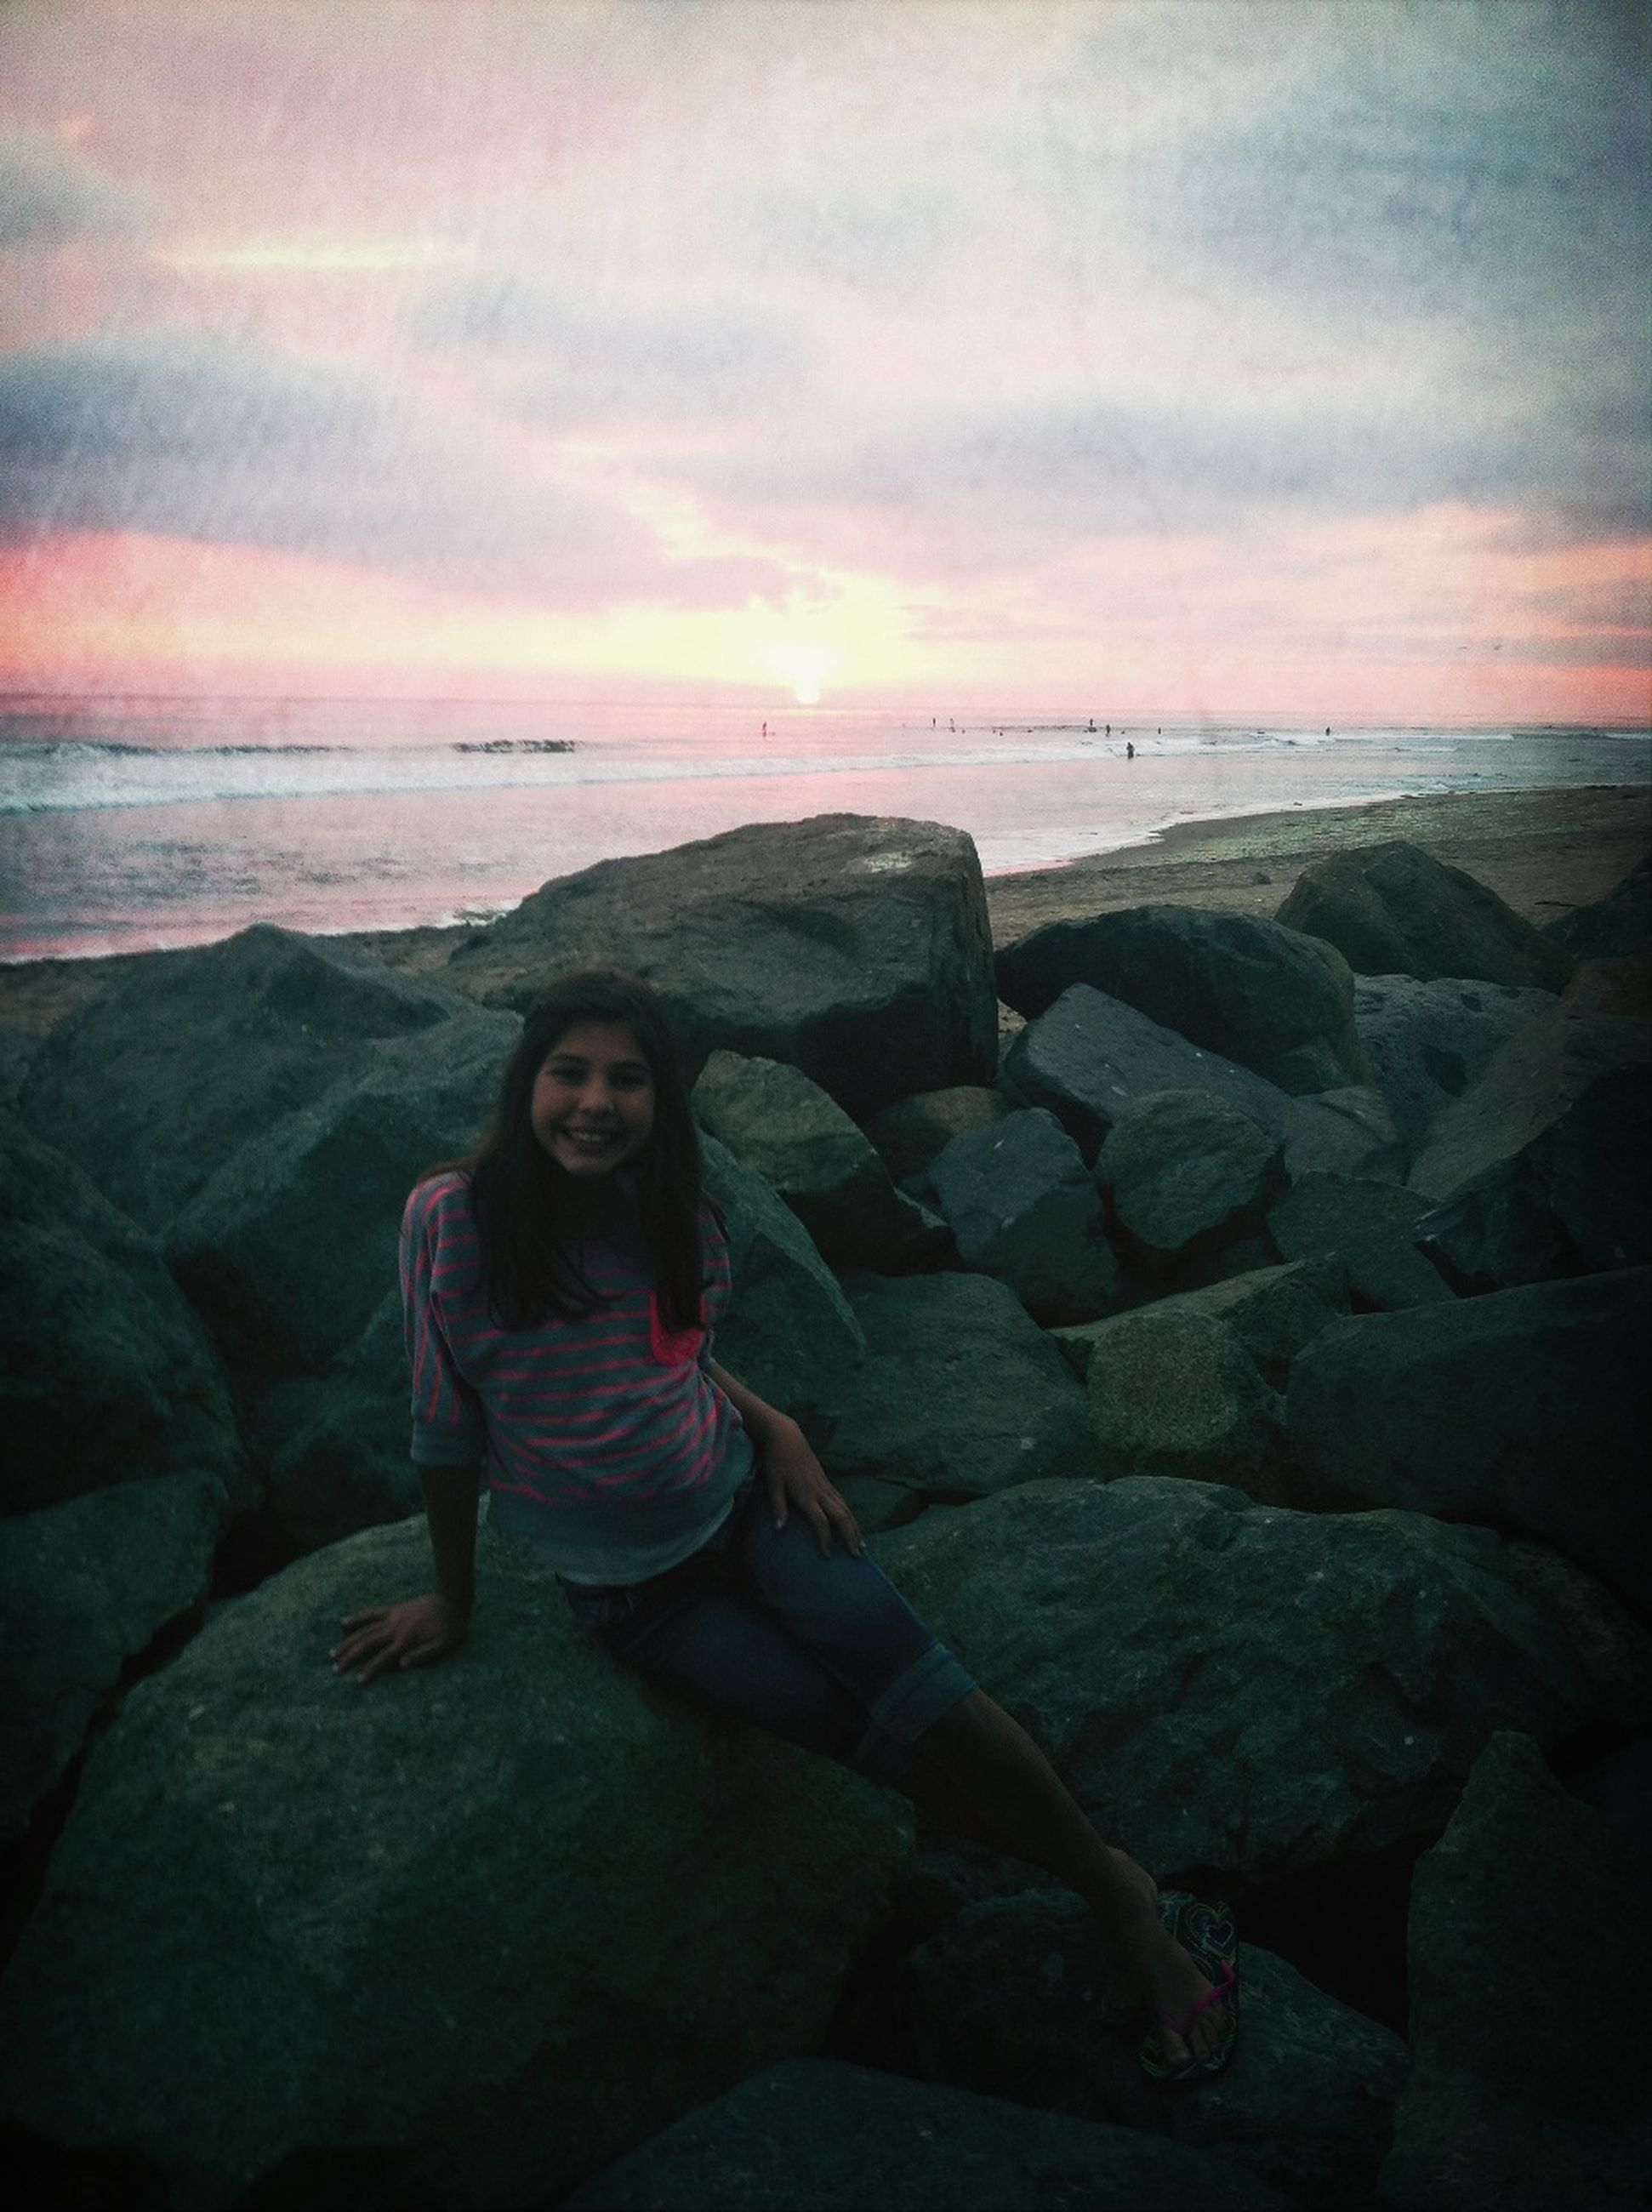 lifestyles, sky, leisure activity, sea, sunset, horizon over water, cloud - sky, water, standing, casual clothing, beach, full length, scenics, young women, young adult, person, beauty in nature, tranquil scene